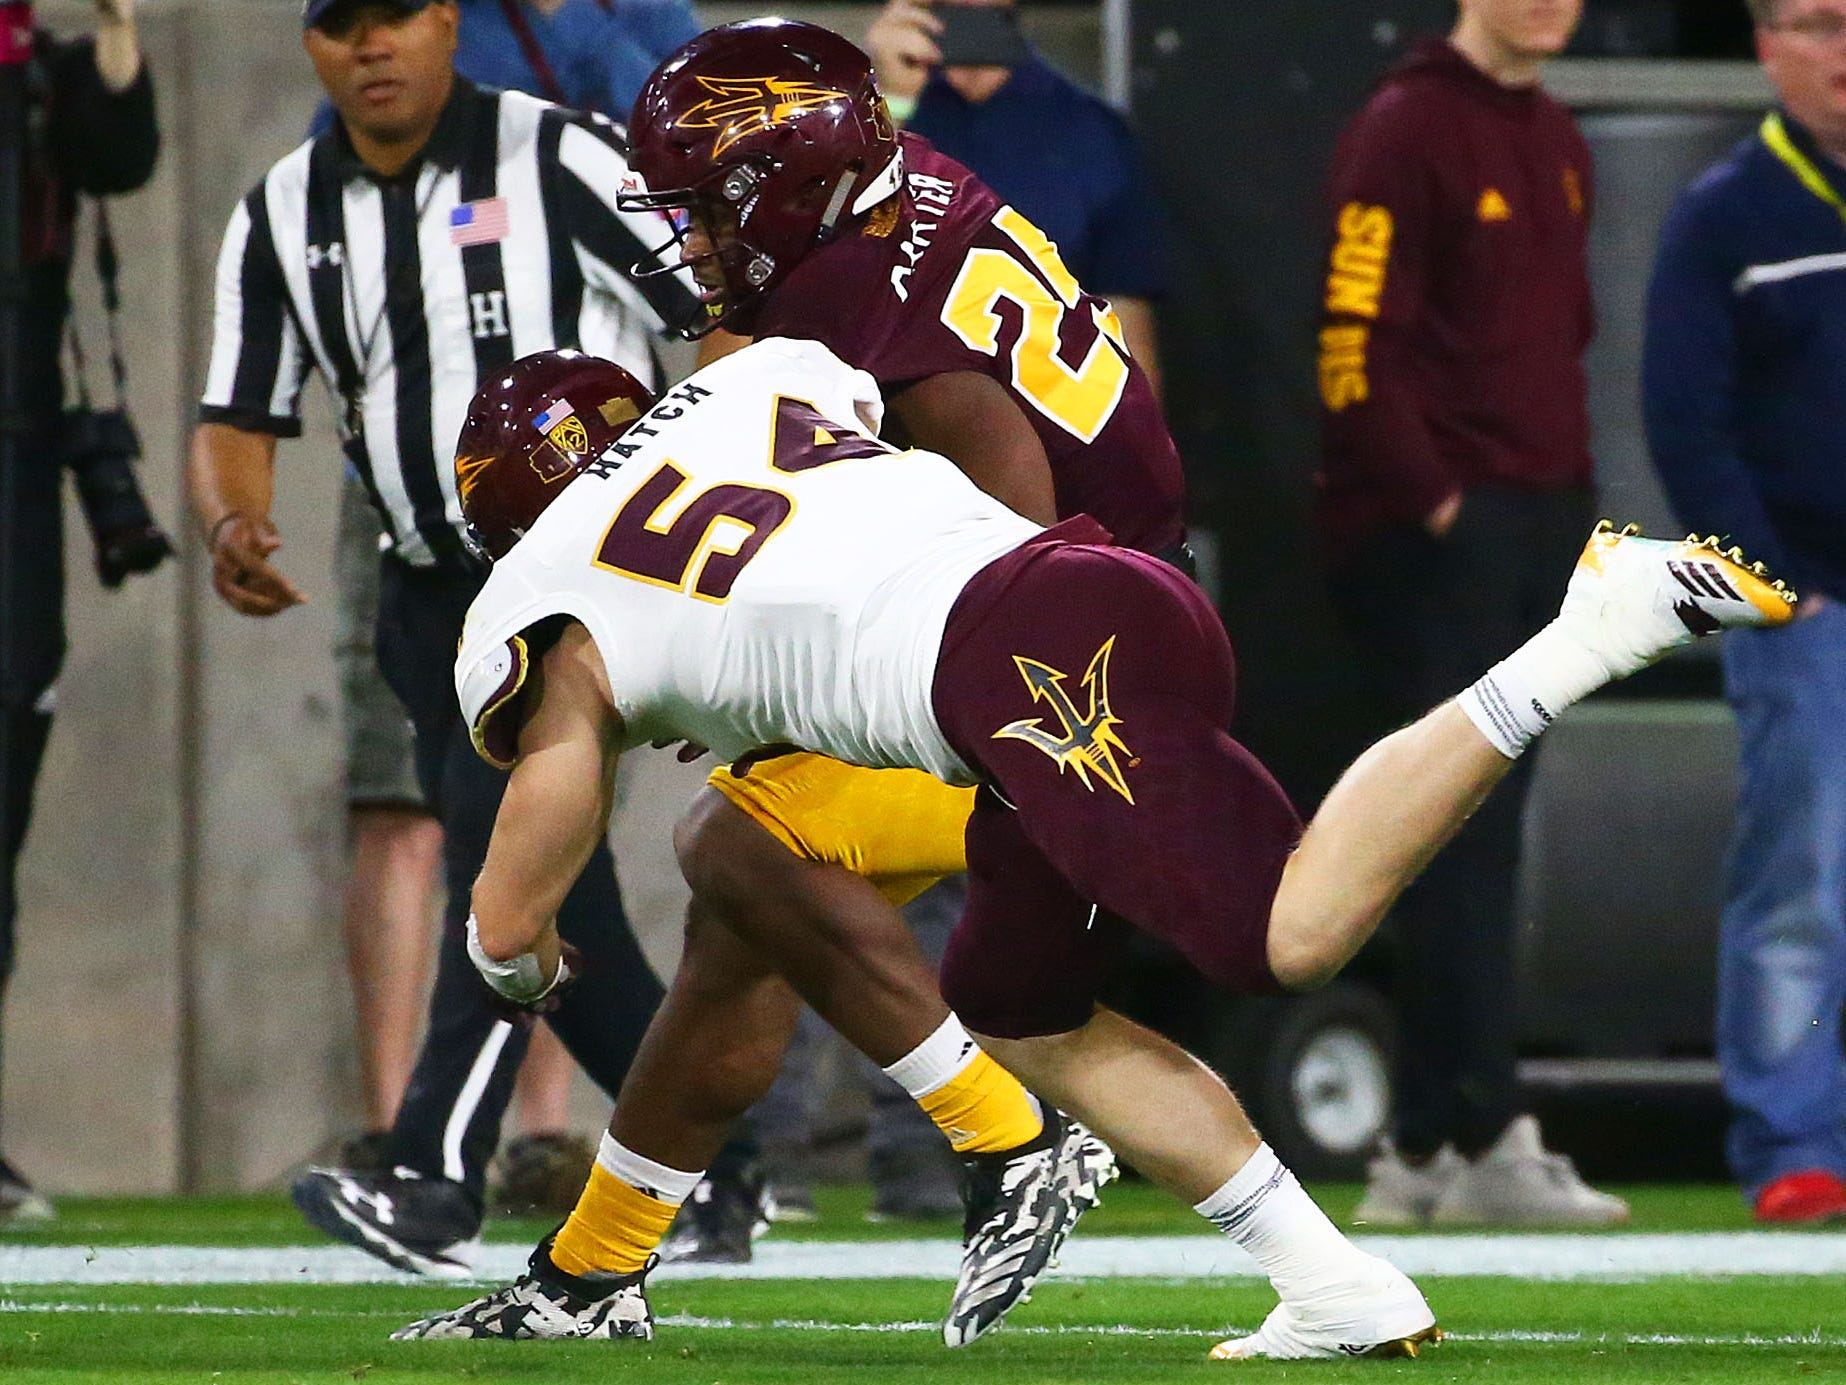 Arizona State linebacker Case Hatch (54) makes a tackle during the spring practice game on Feb. 28, 2019 at Sun Devil Stadium in Tempe, Ariz.